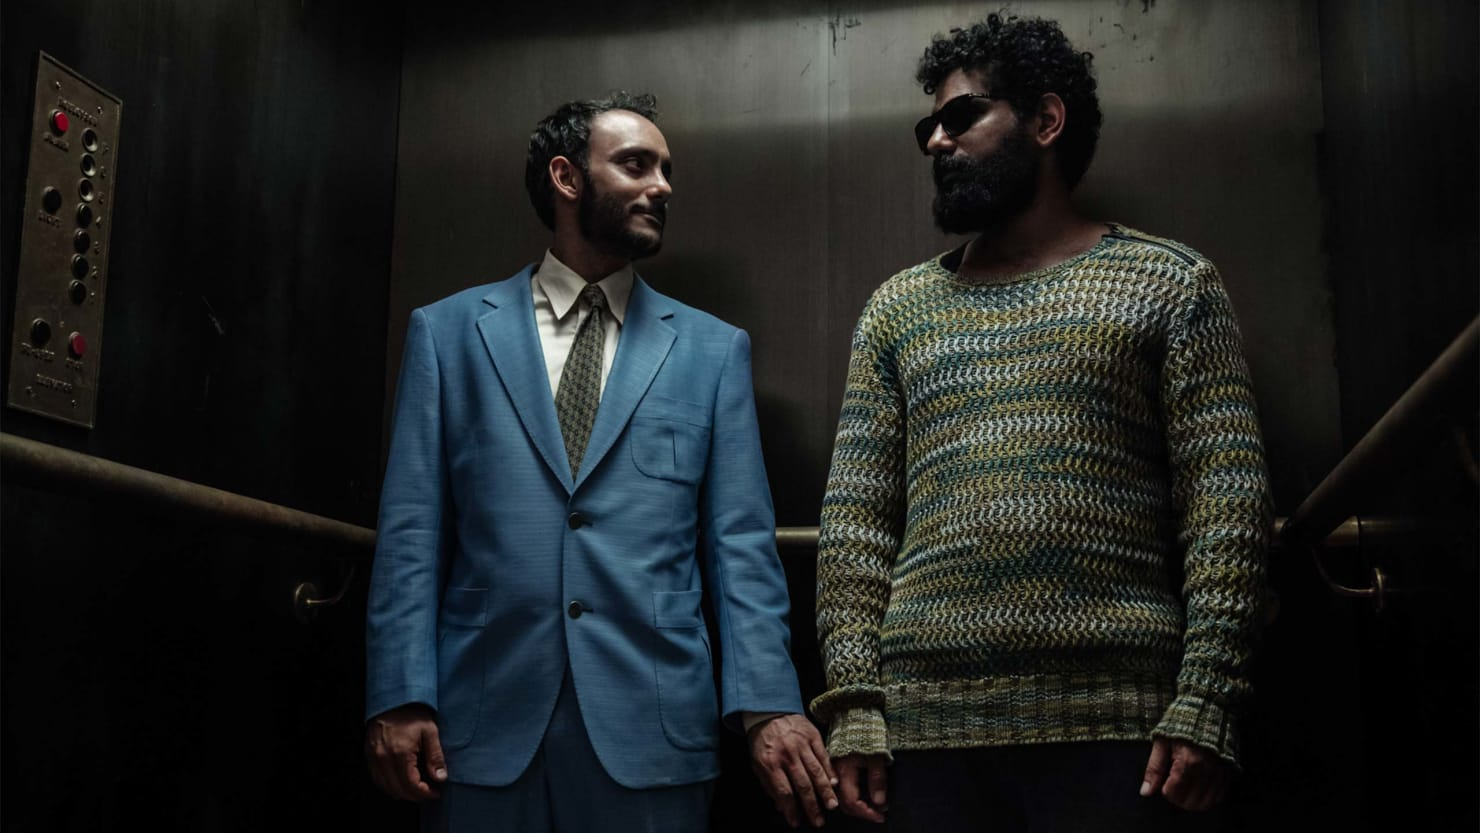 american gods' just aired tv's most explicit gay sex scene ever